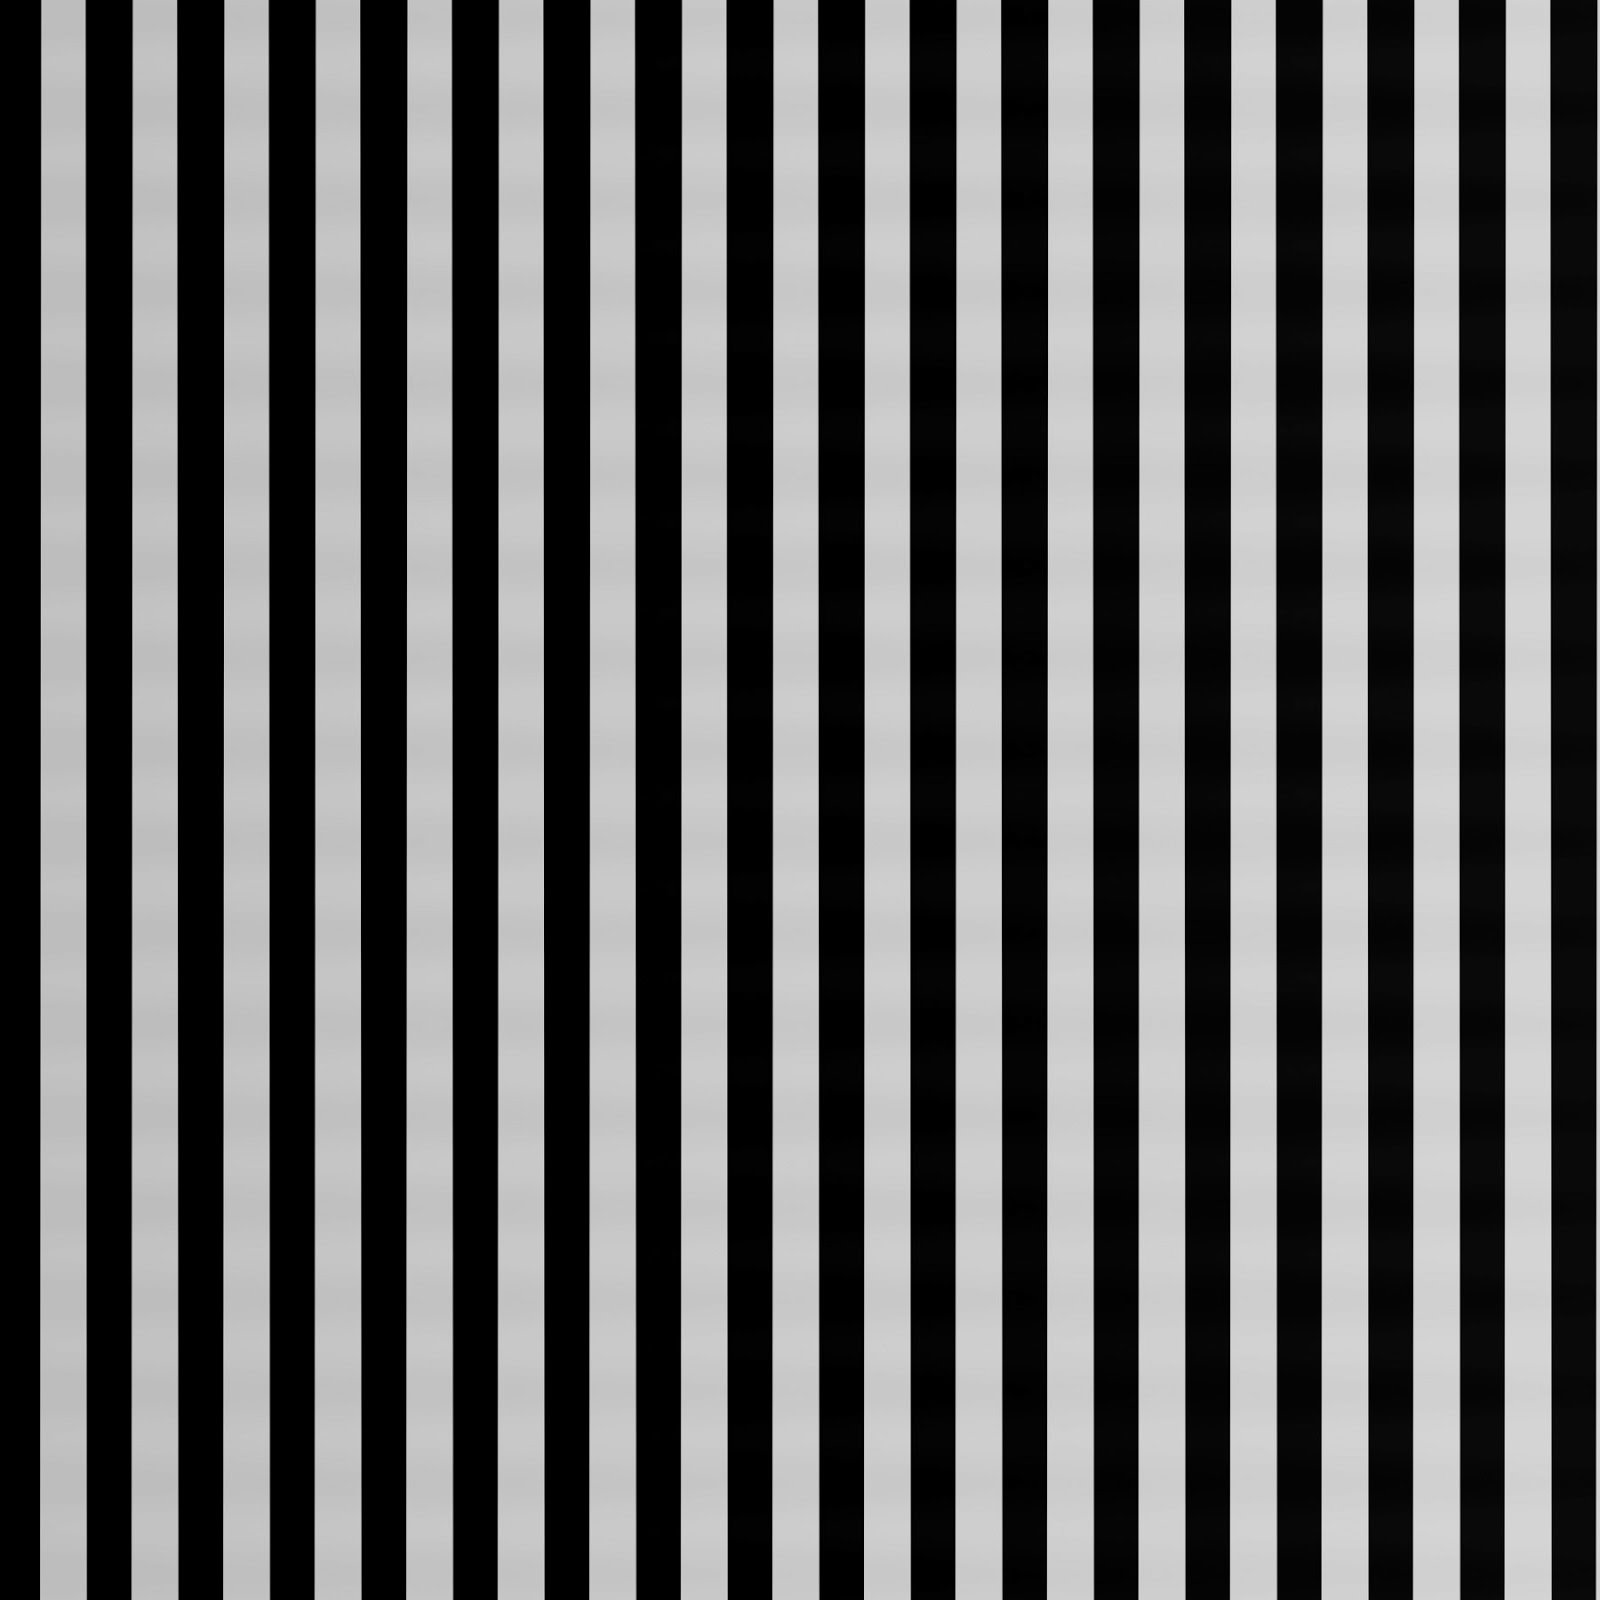 Gray And Black Stripes Images & Pictures - Becuo